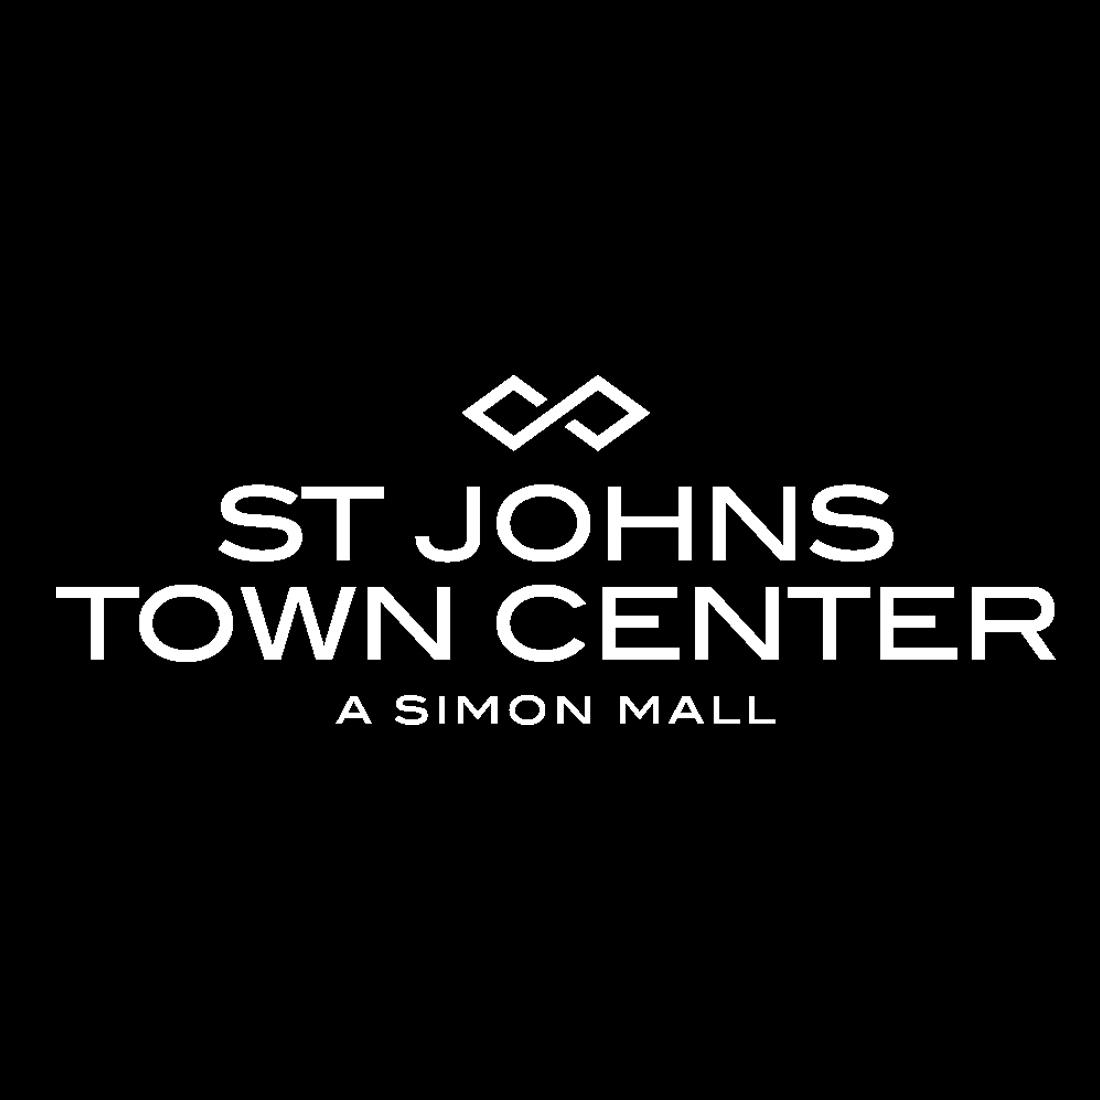 St Johns Town Center Coupons Near Me In Jacksonville